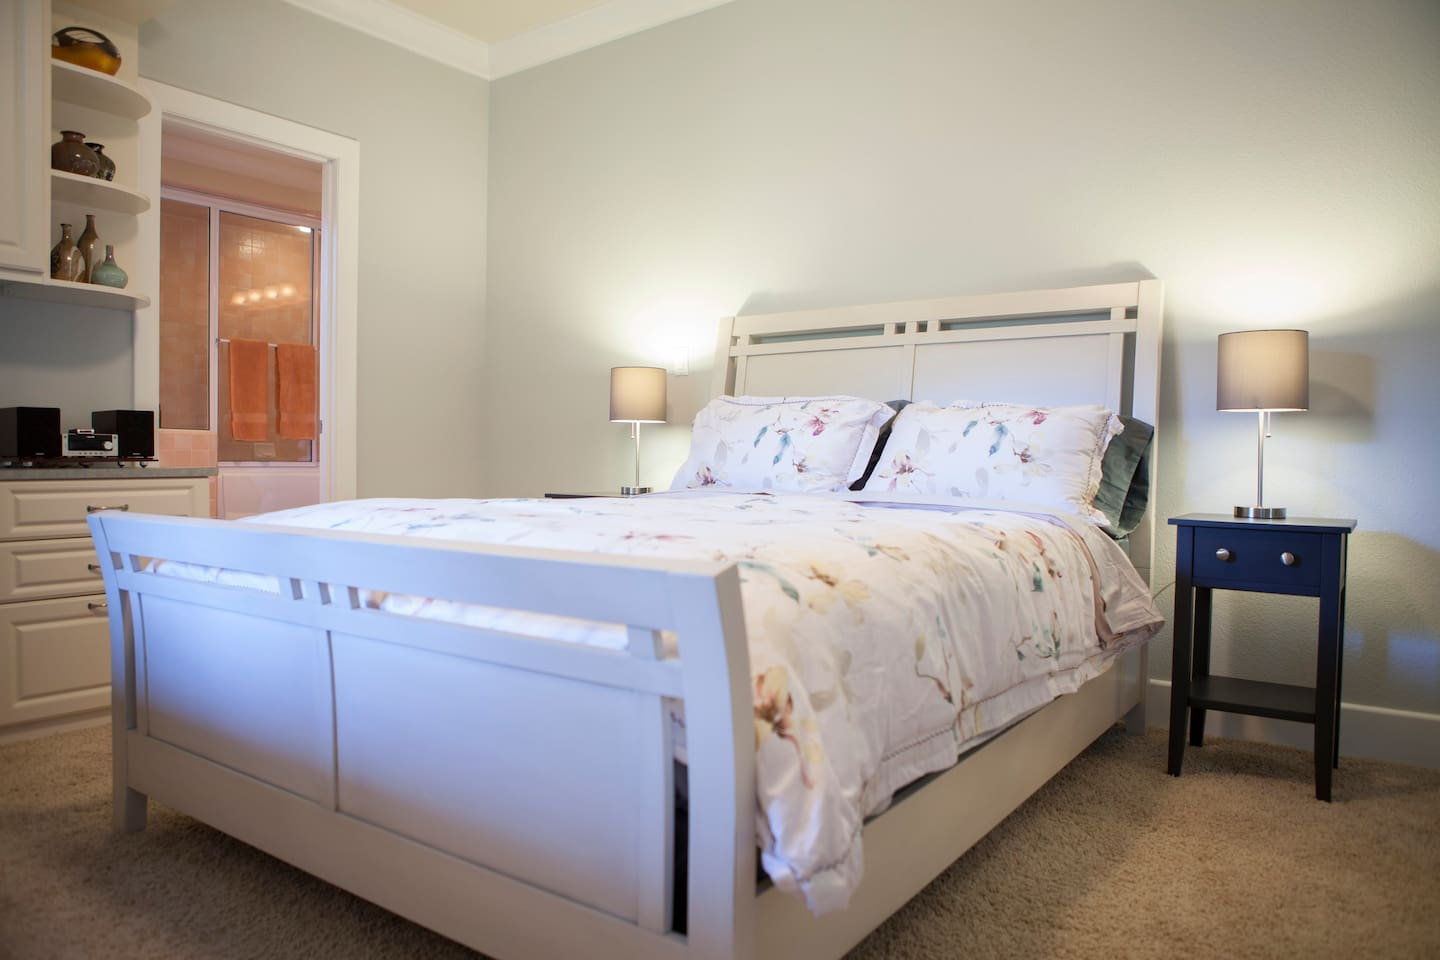 Spacious, 200 square foot (22 m2) newly remodeled bedroom with queen bed and high quality mattress.